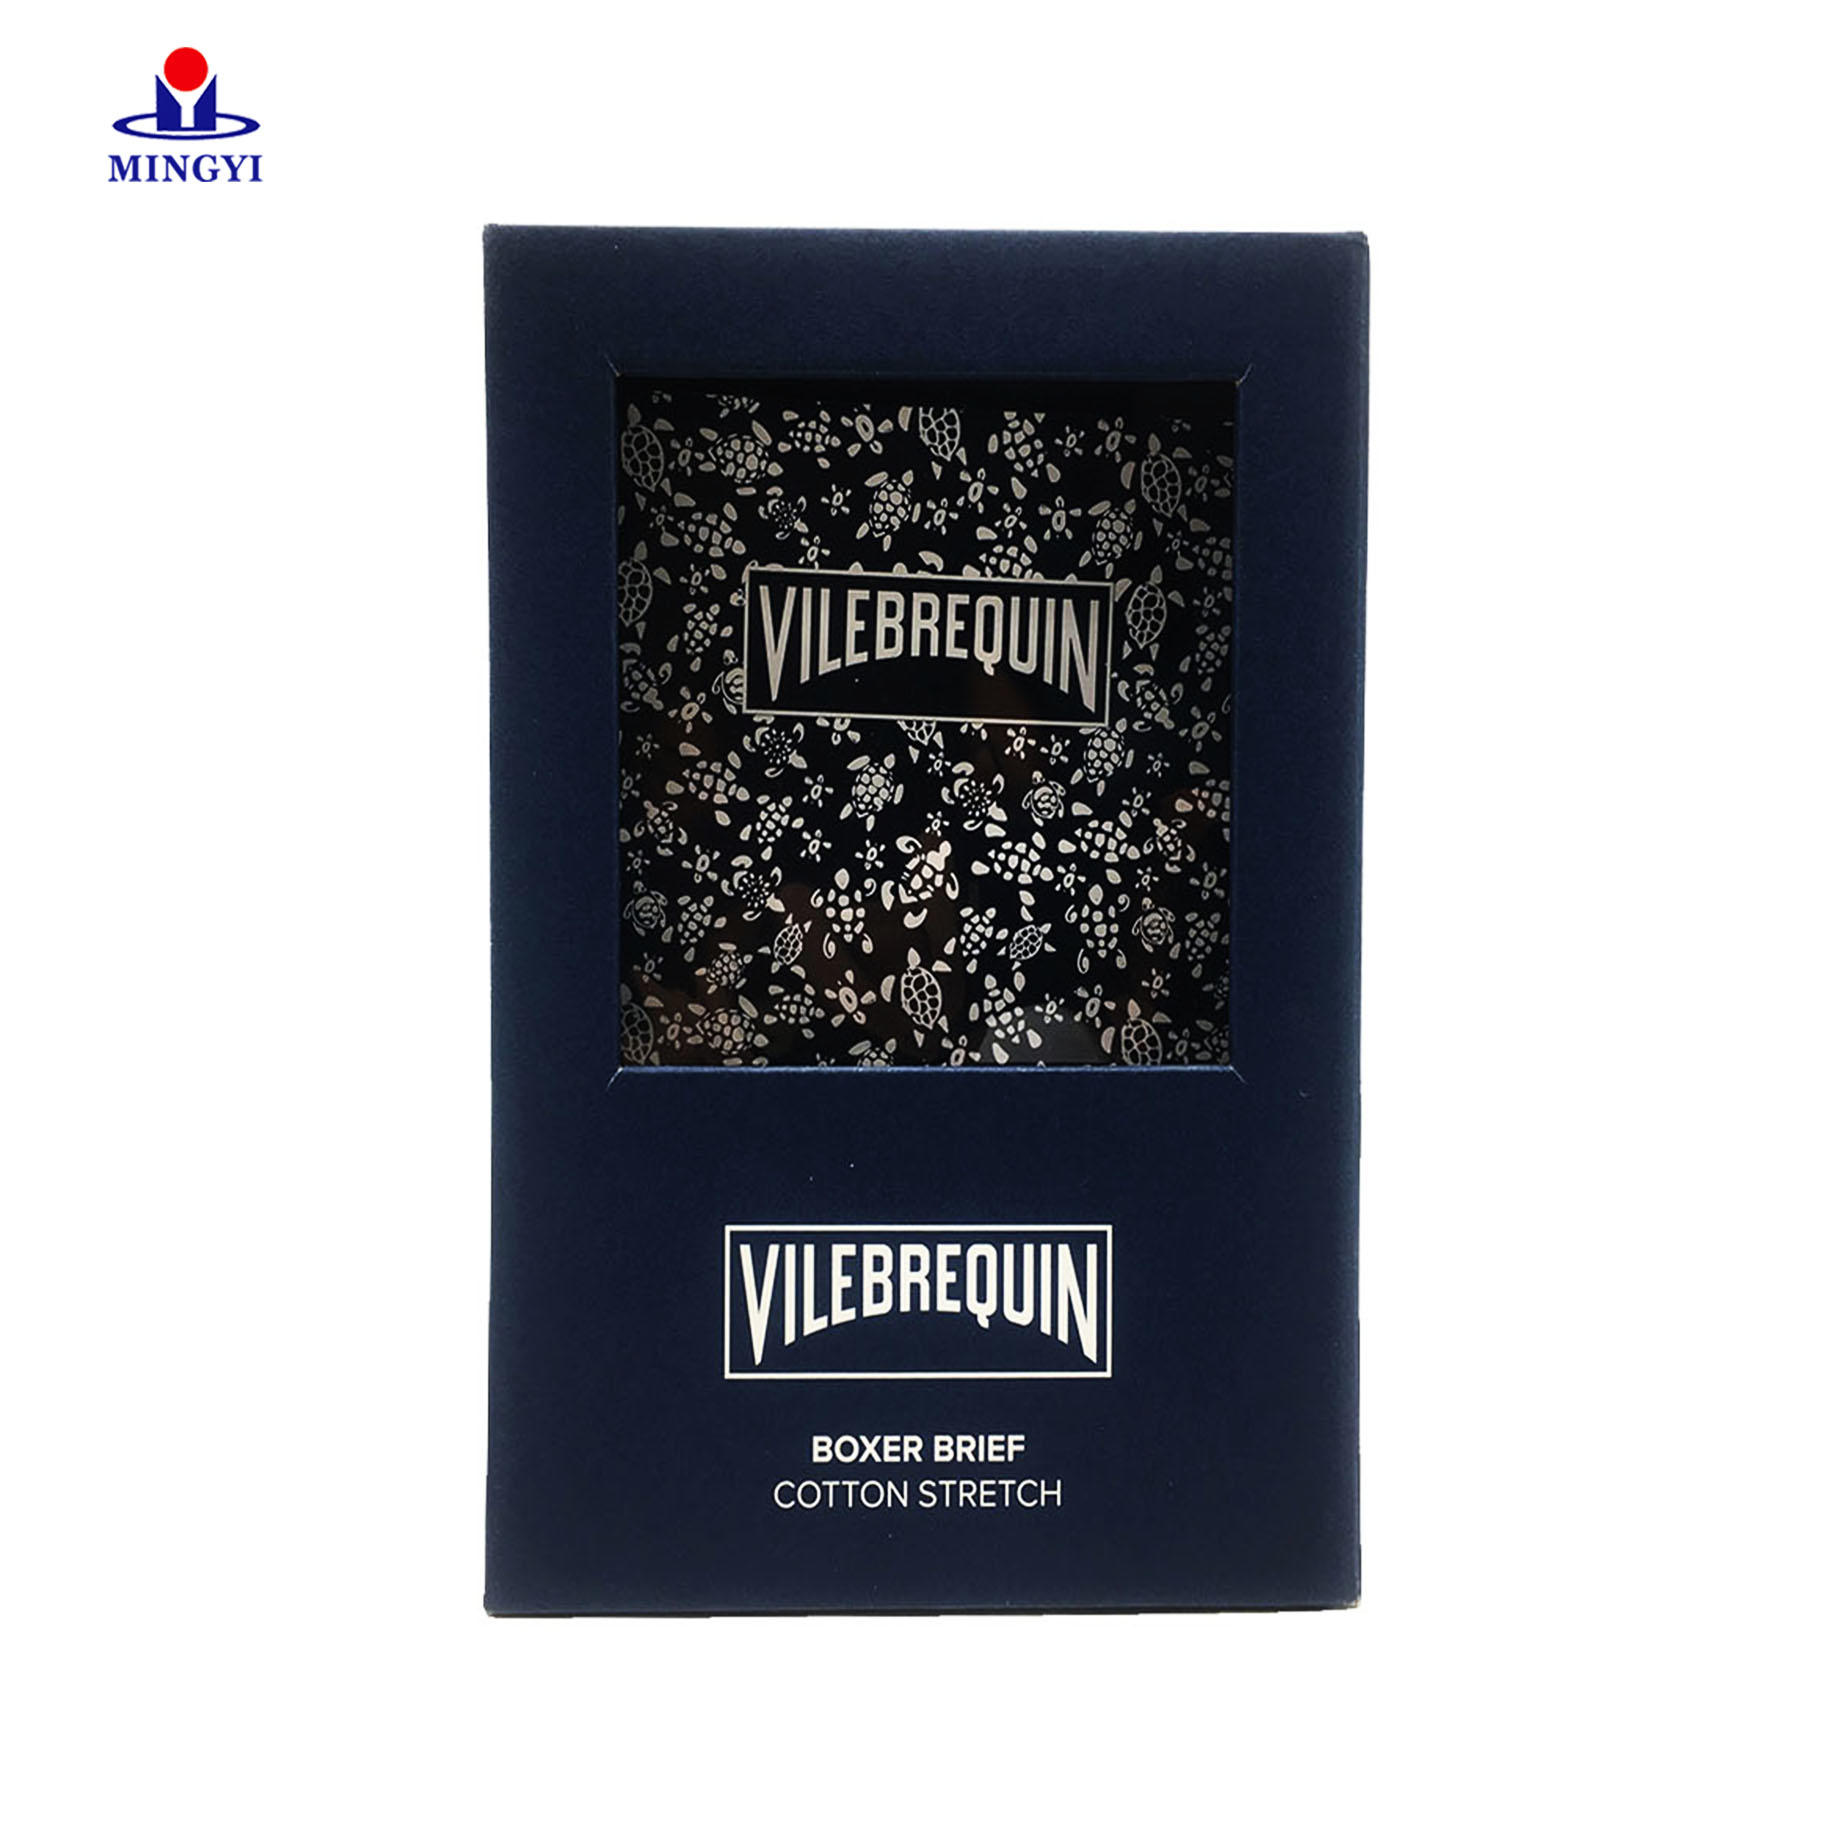 Customized High Quality Matte Rigid Cardboard Socks and underpants Paper Packaging Box with Clear Pvc Window Lift Off Lid